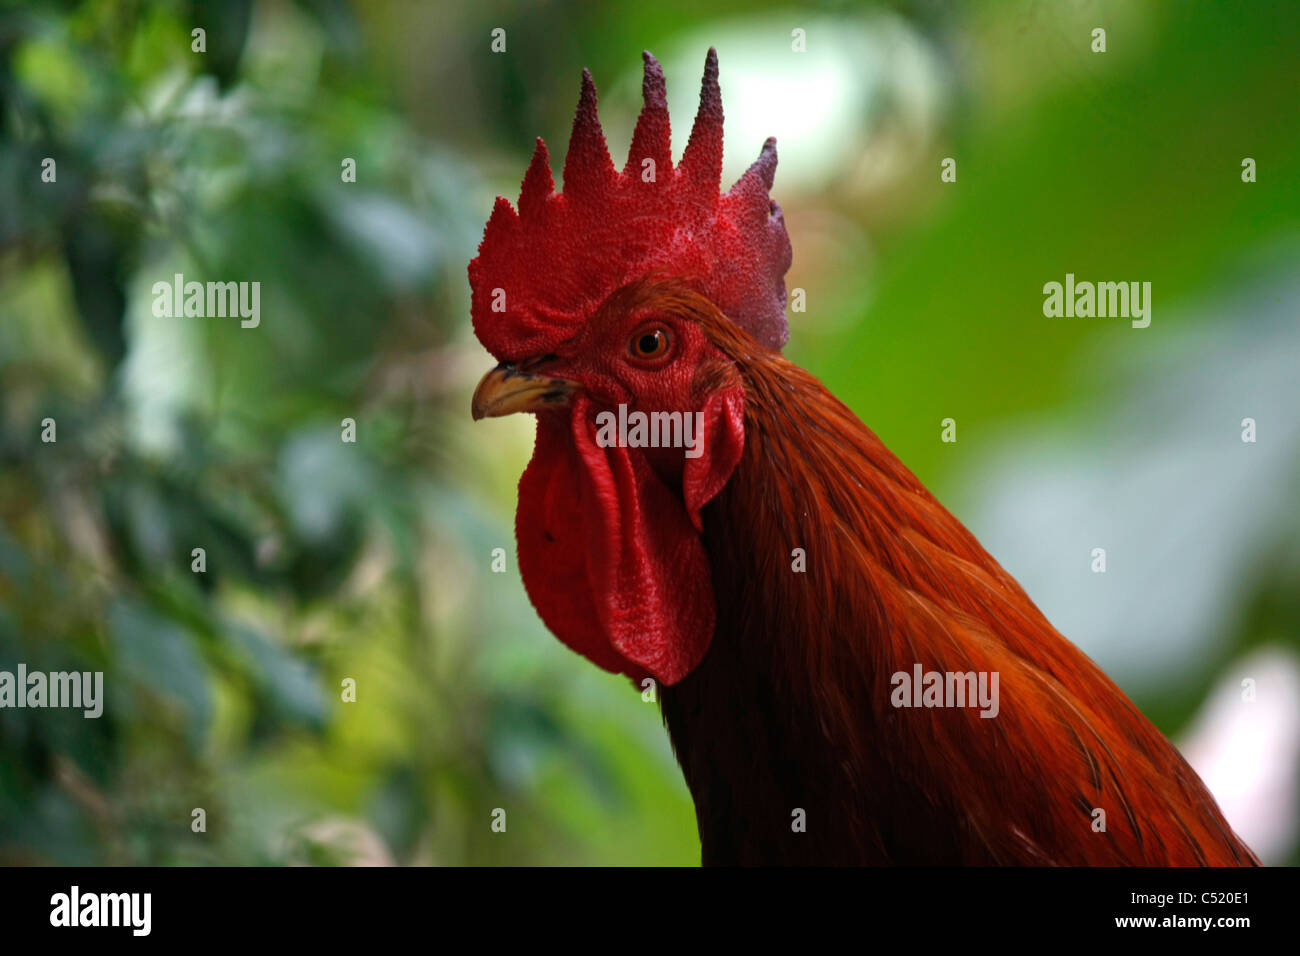 rooster stock photos u0026 rooster stock images alamy